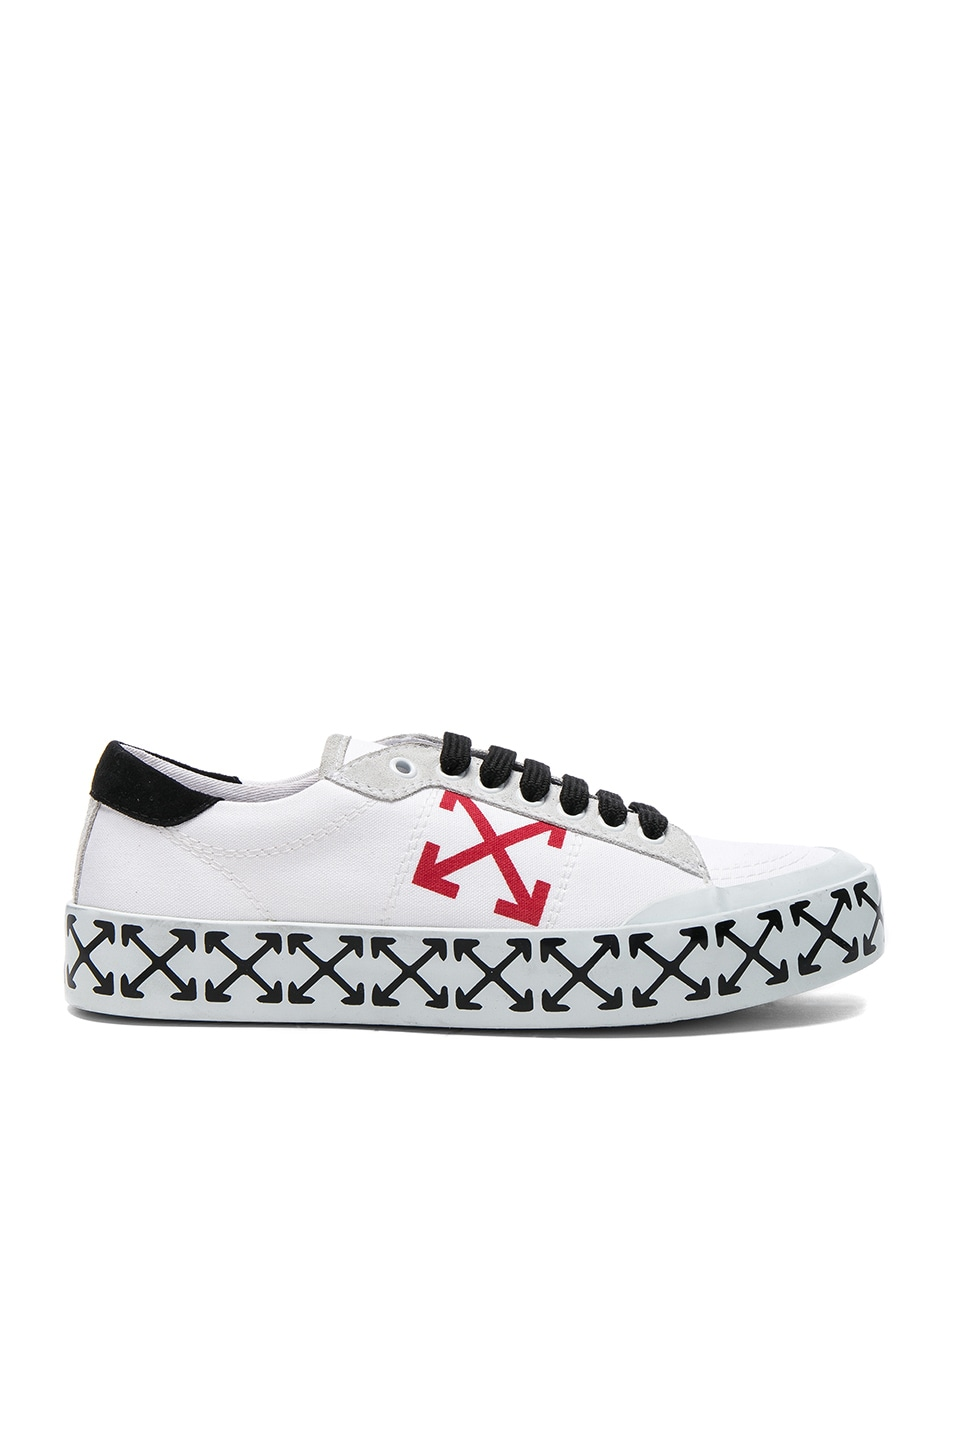 Image 1 of OFF-WHITE Vulcanized Arrow Sneakers in White & Red